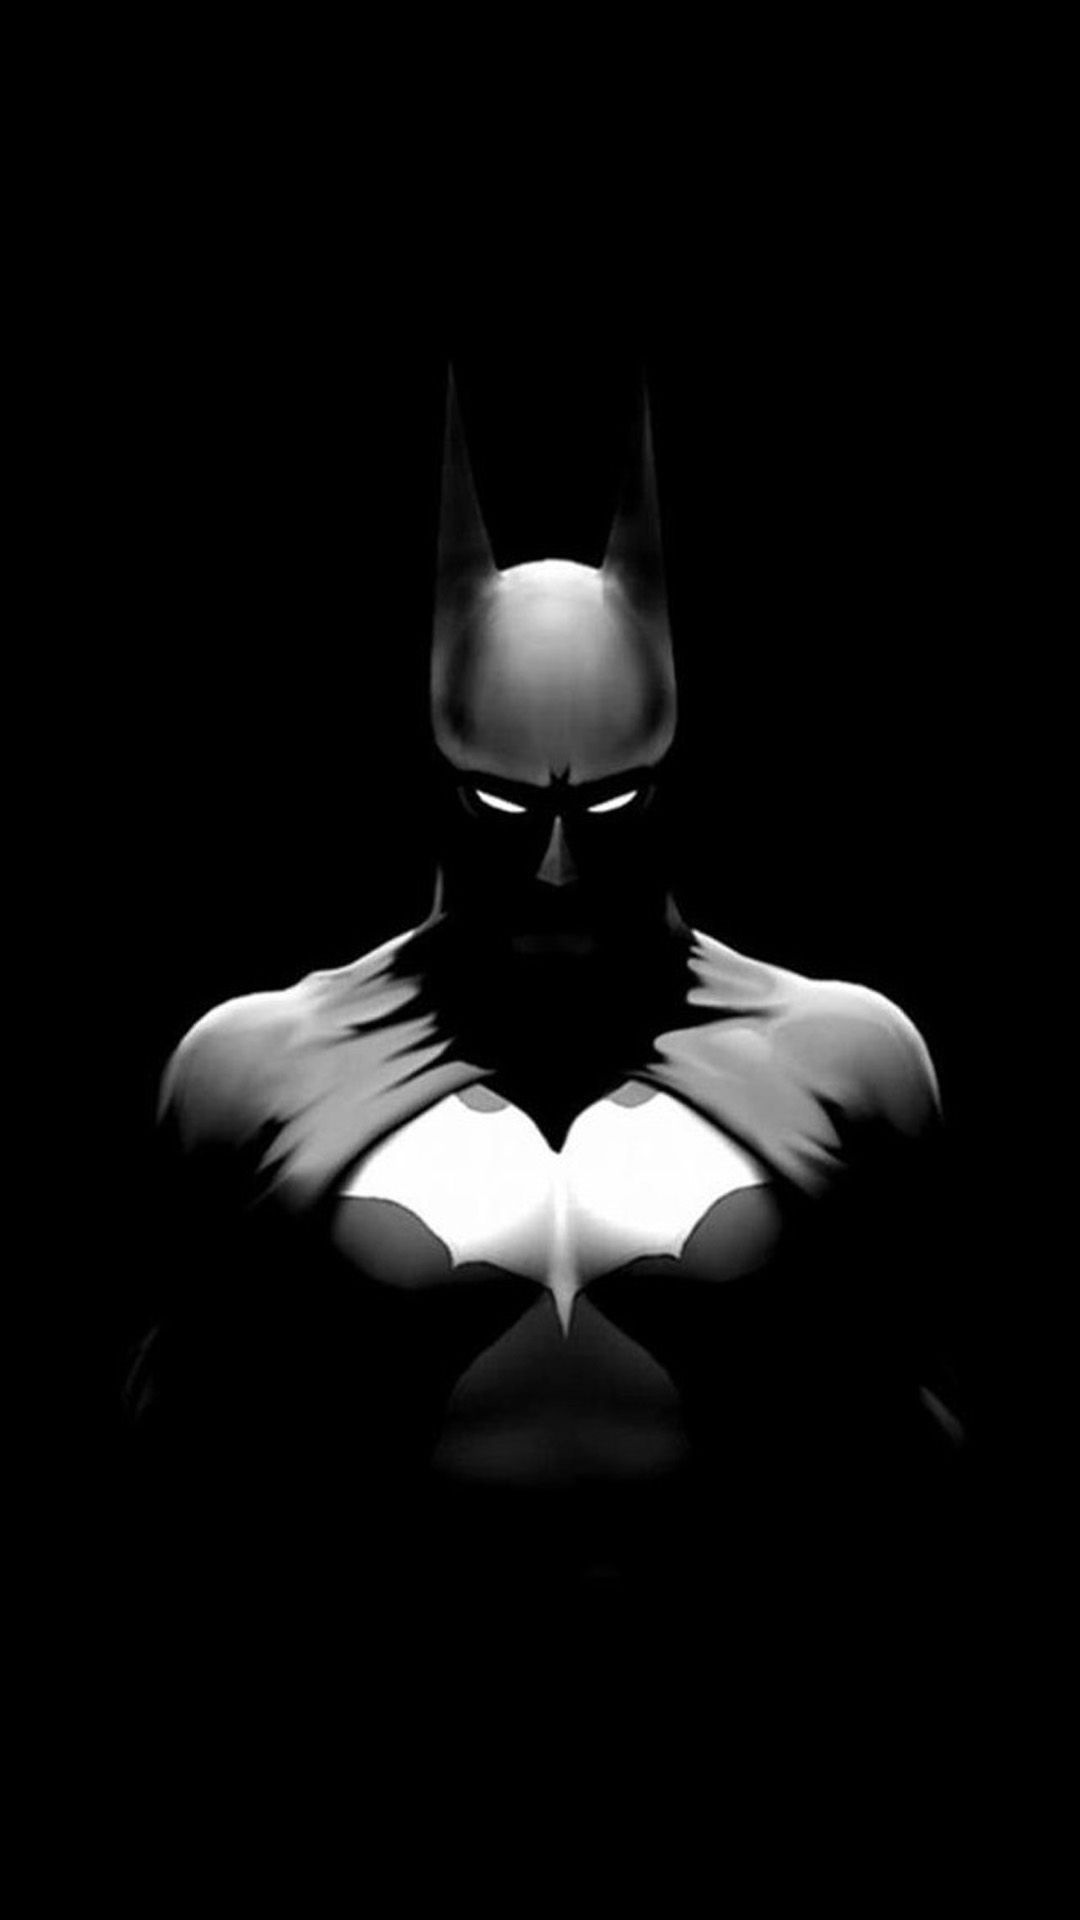 Wallpaper iphone 6 black - Batman In Dark Background Iphone 6 Wallpaper